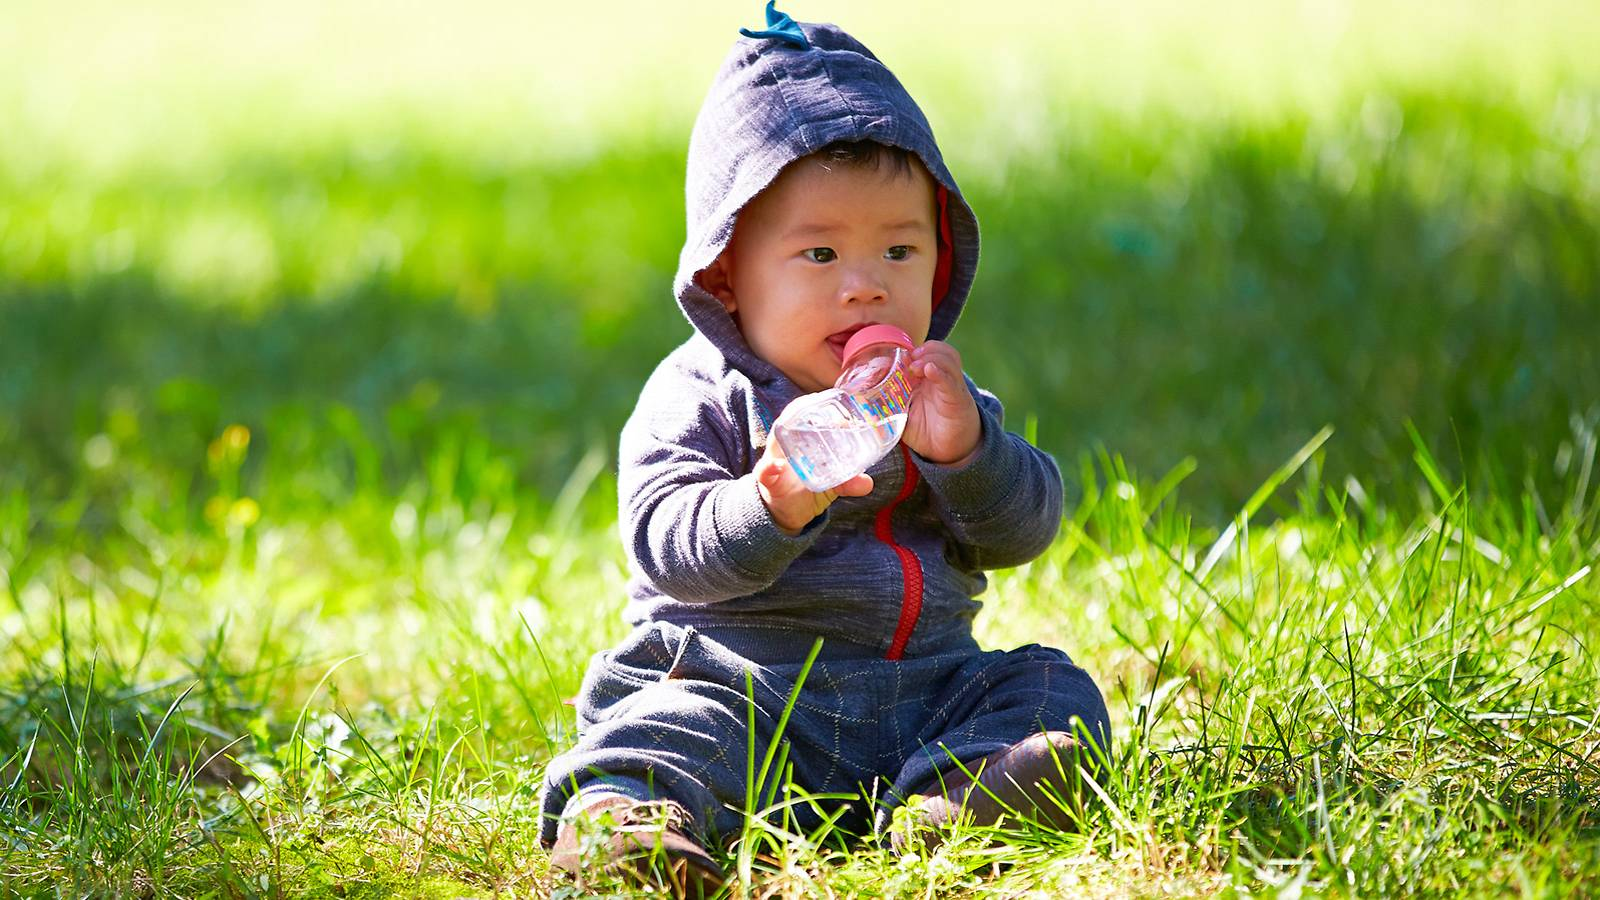 Babies-Keep-your-baby-safe-outdoors-—-make-him-drink-MAIN